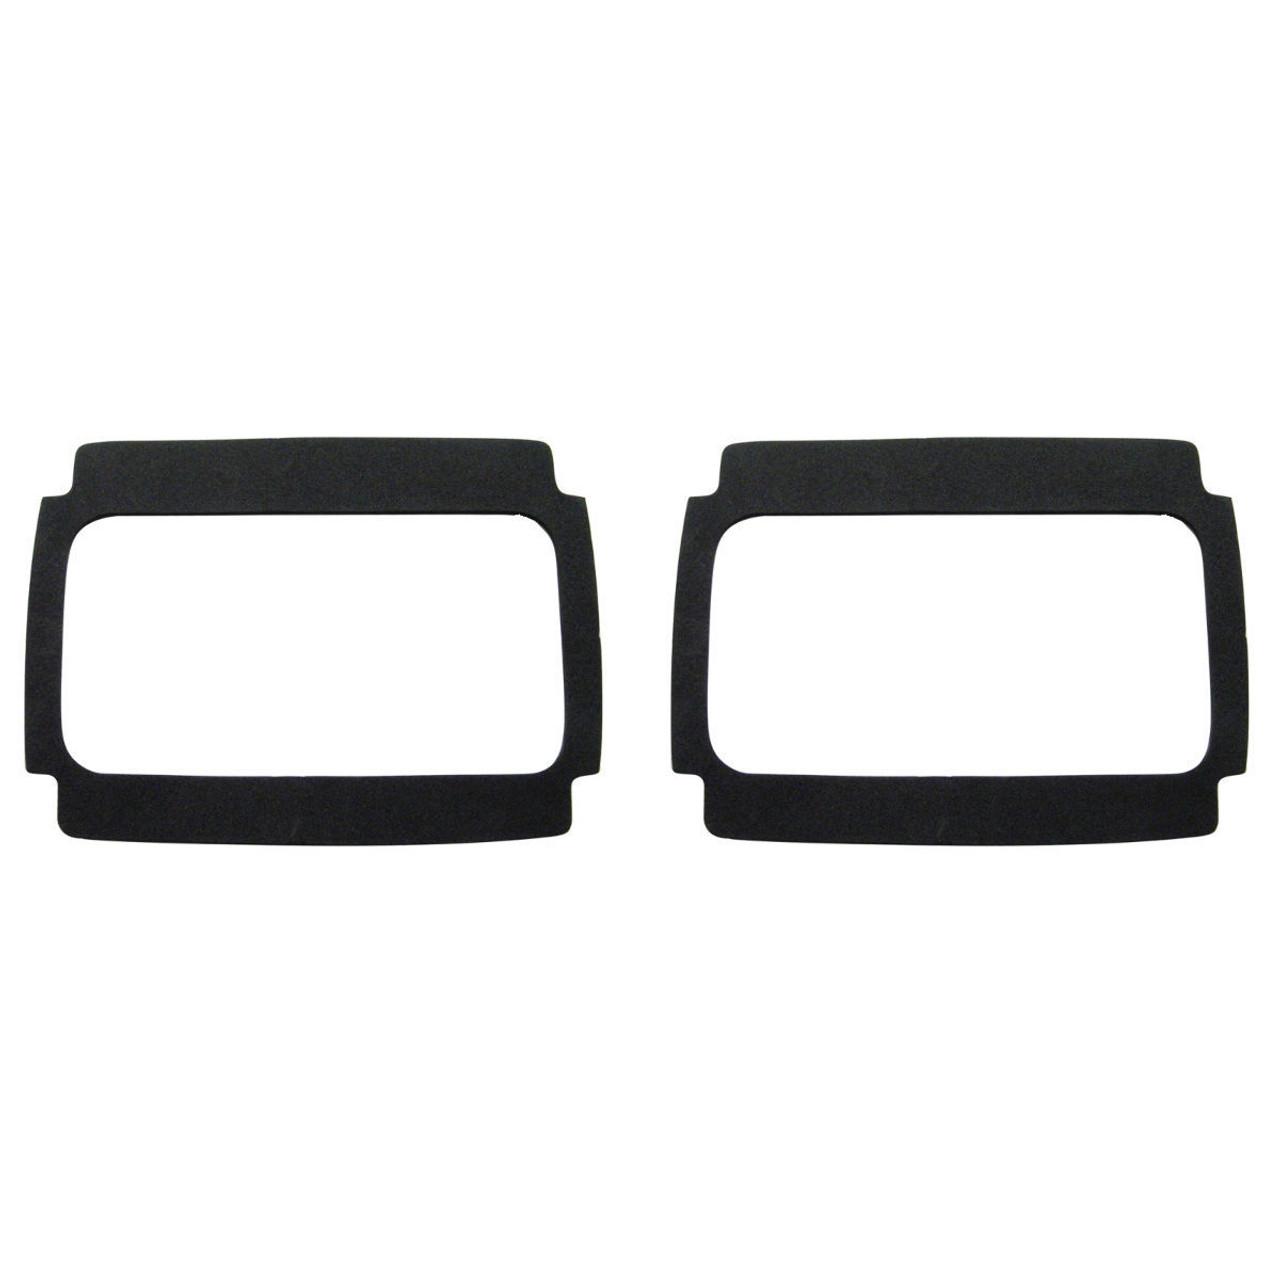 Tail Light Lens Gasket - Black Foam - Compatible with Ford Mustang 1964-1966